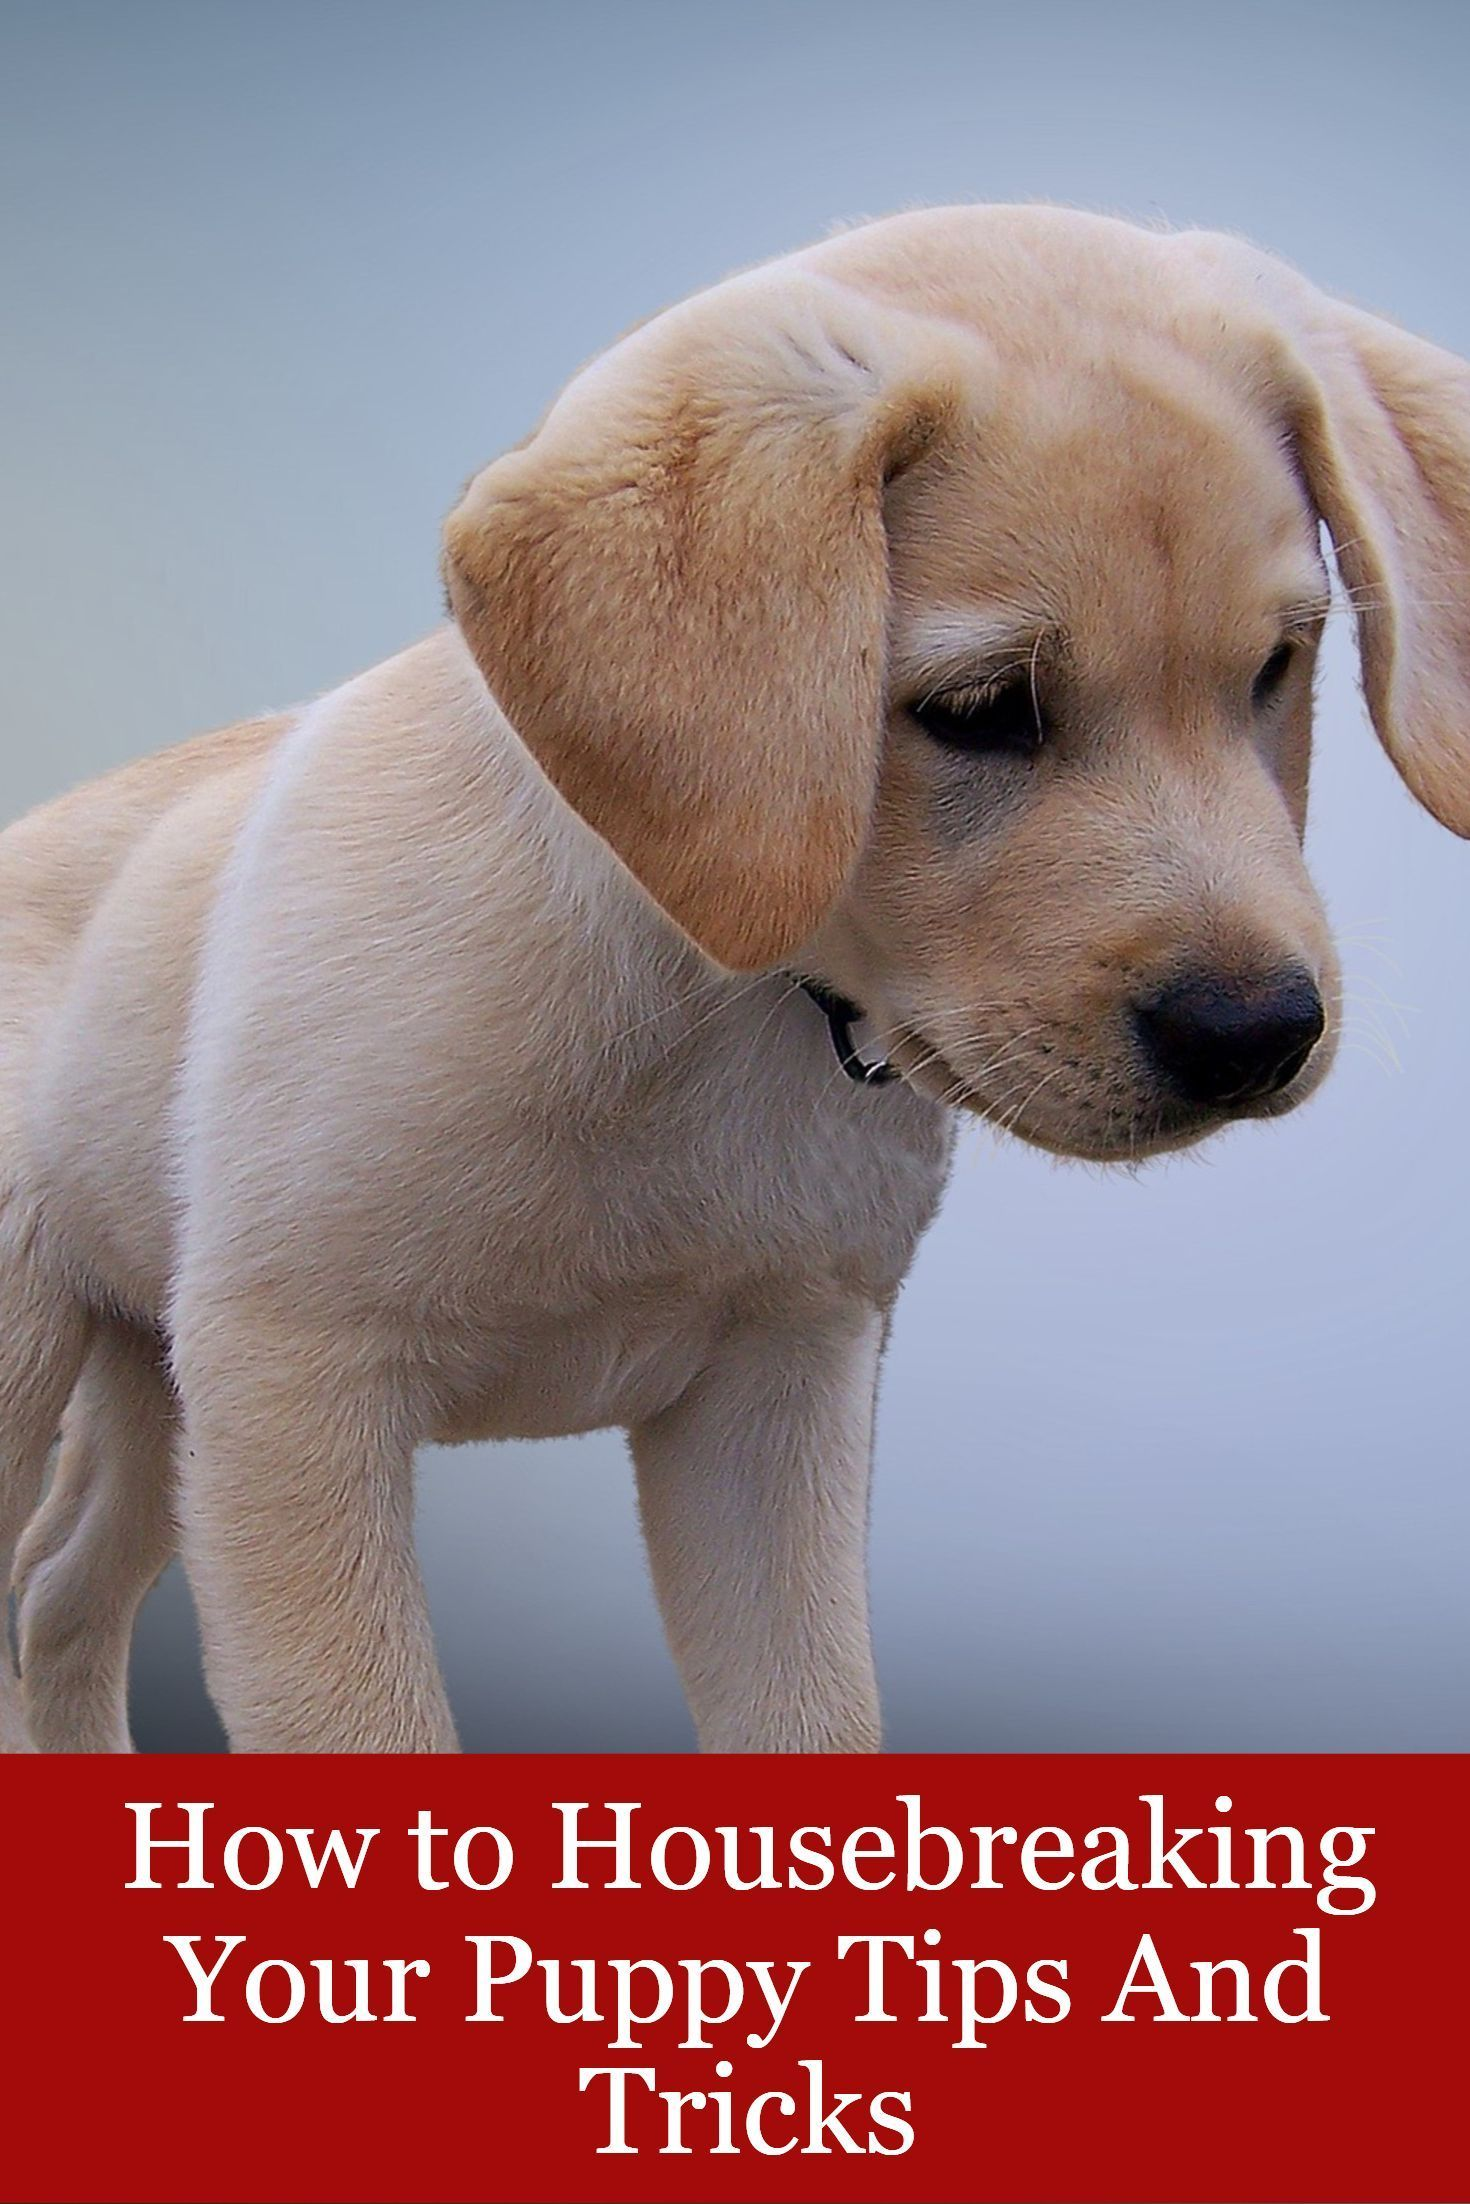 Dog Housebreaking Tips Socializing Dogs Cute Dogs Puppies Dogs